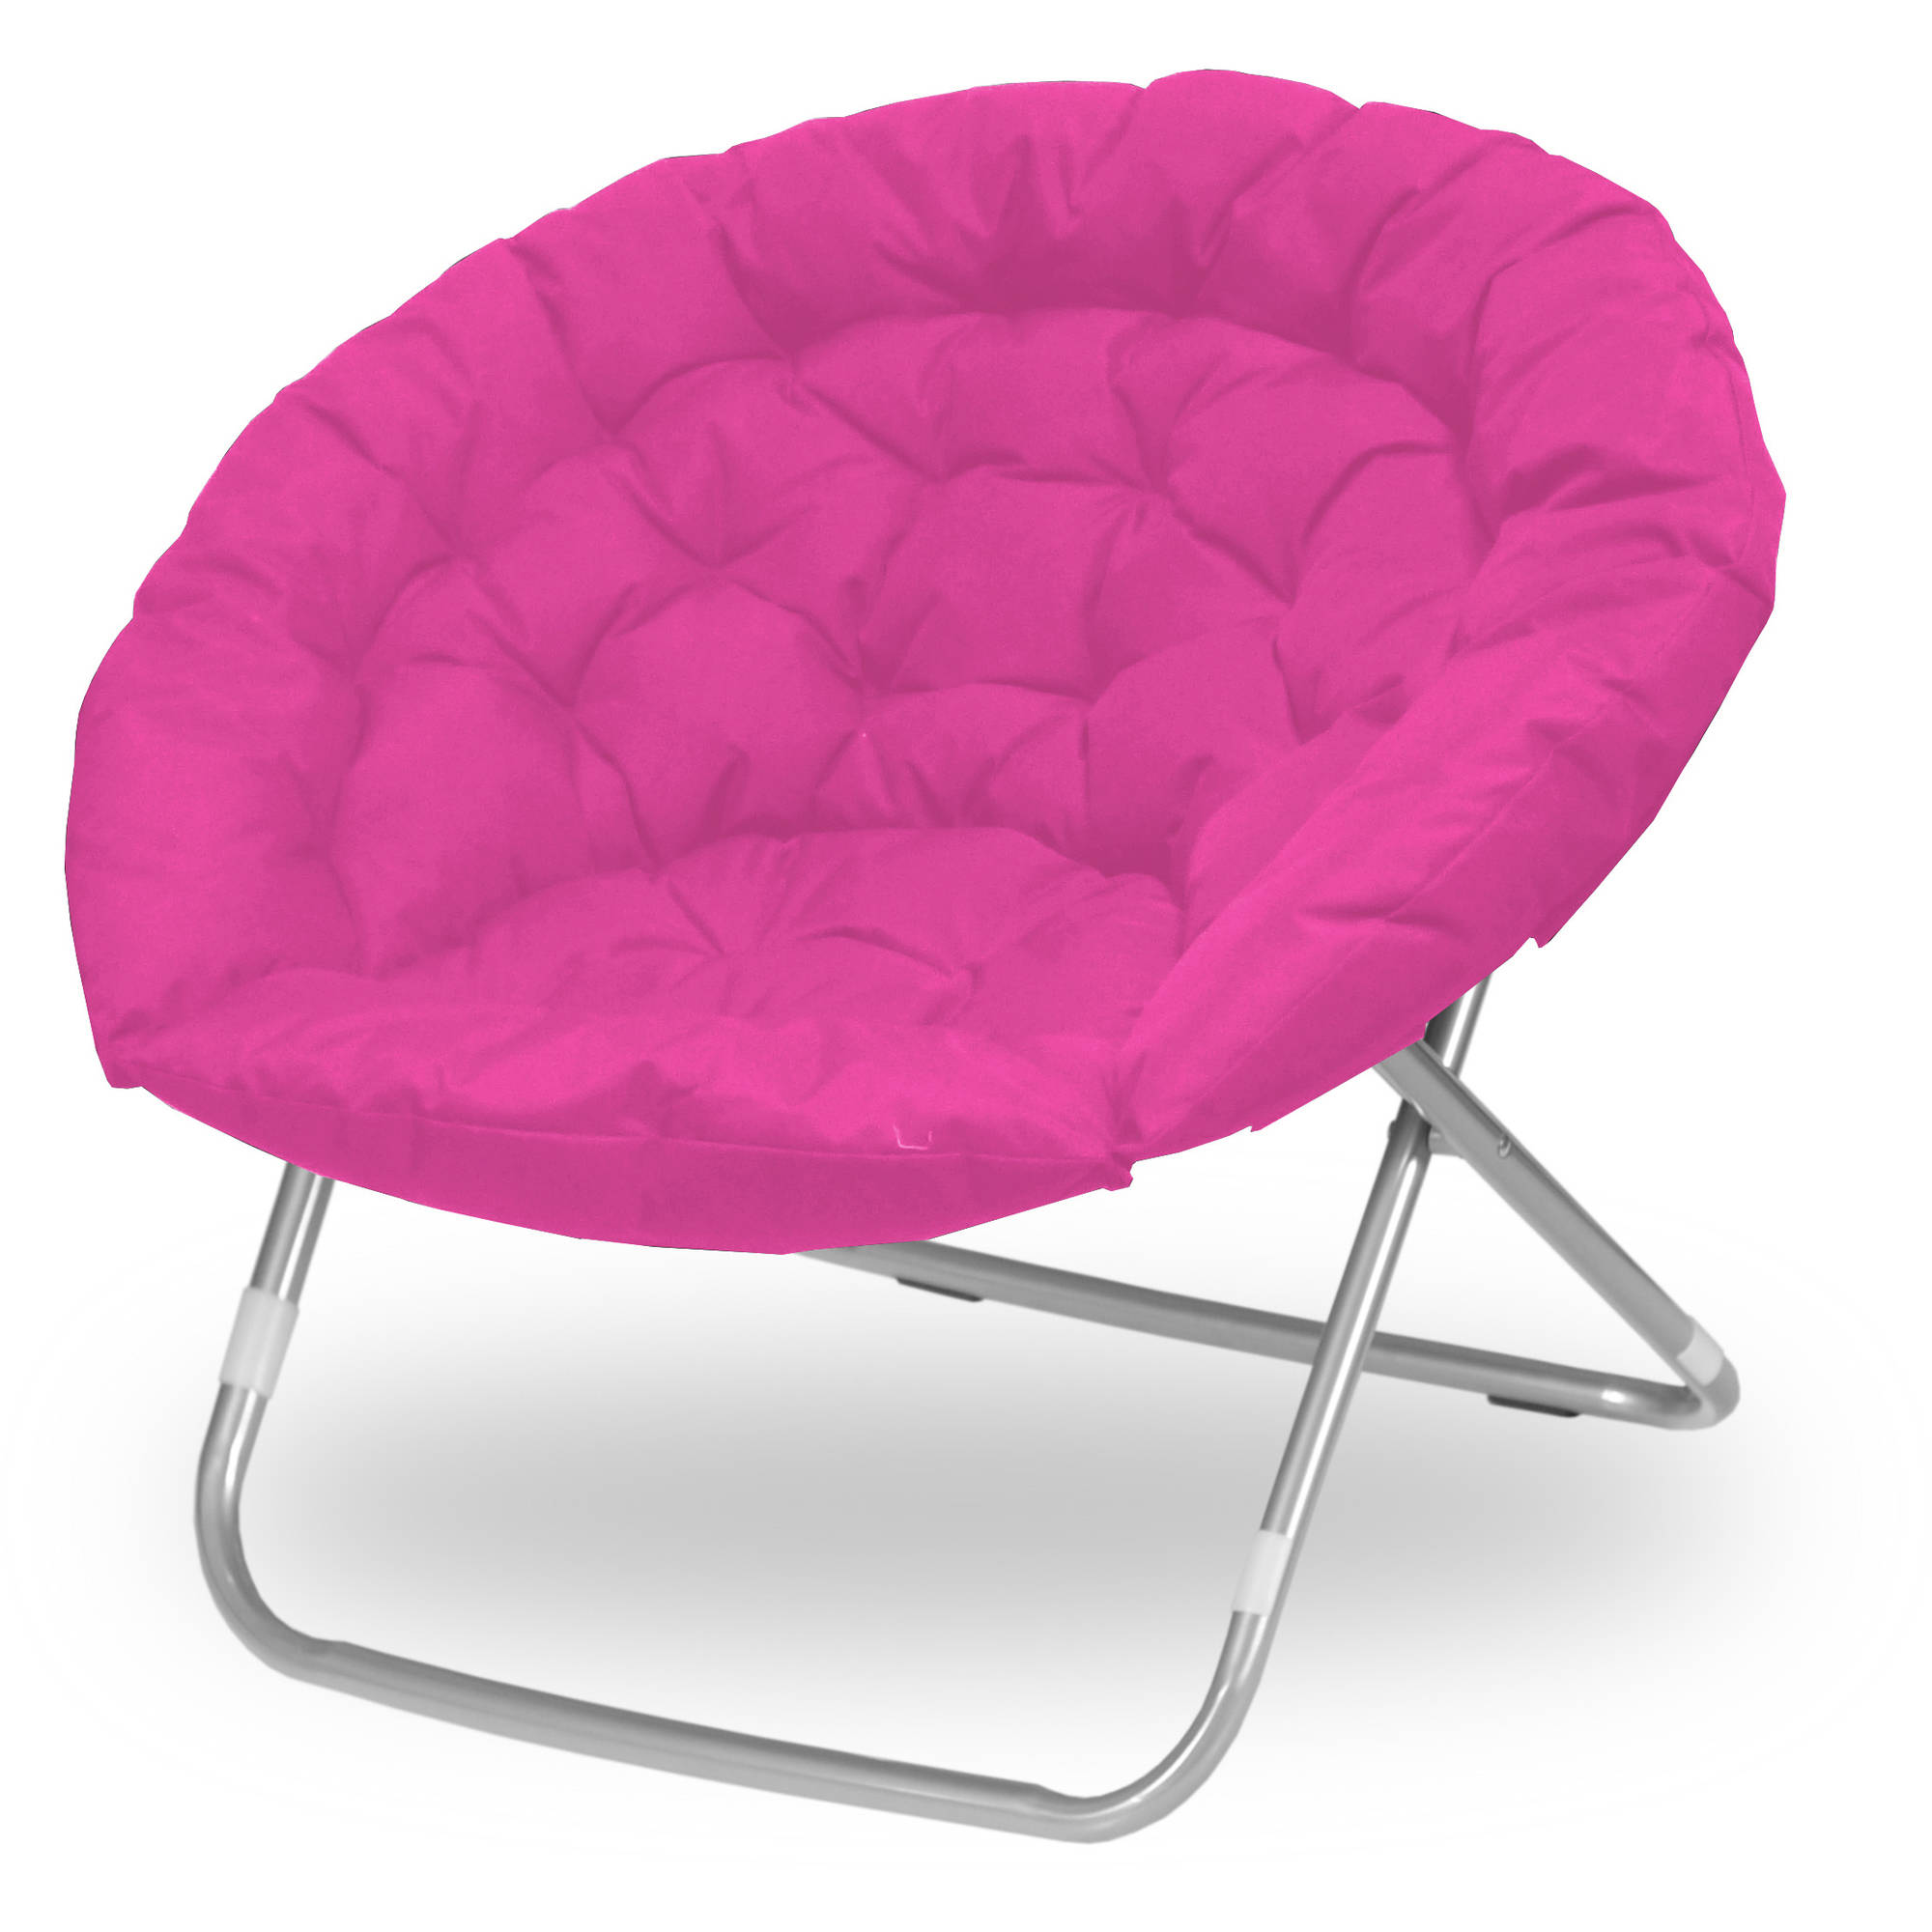 Urban Shop Oversized Adult Saucer Chair, Pink